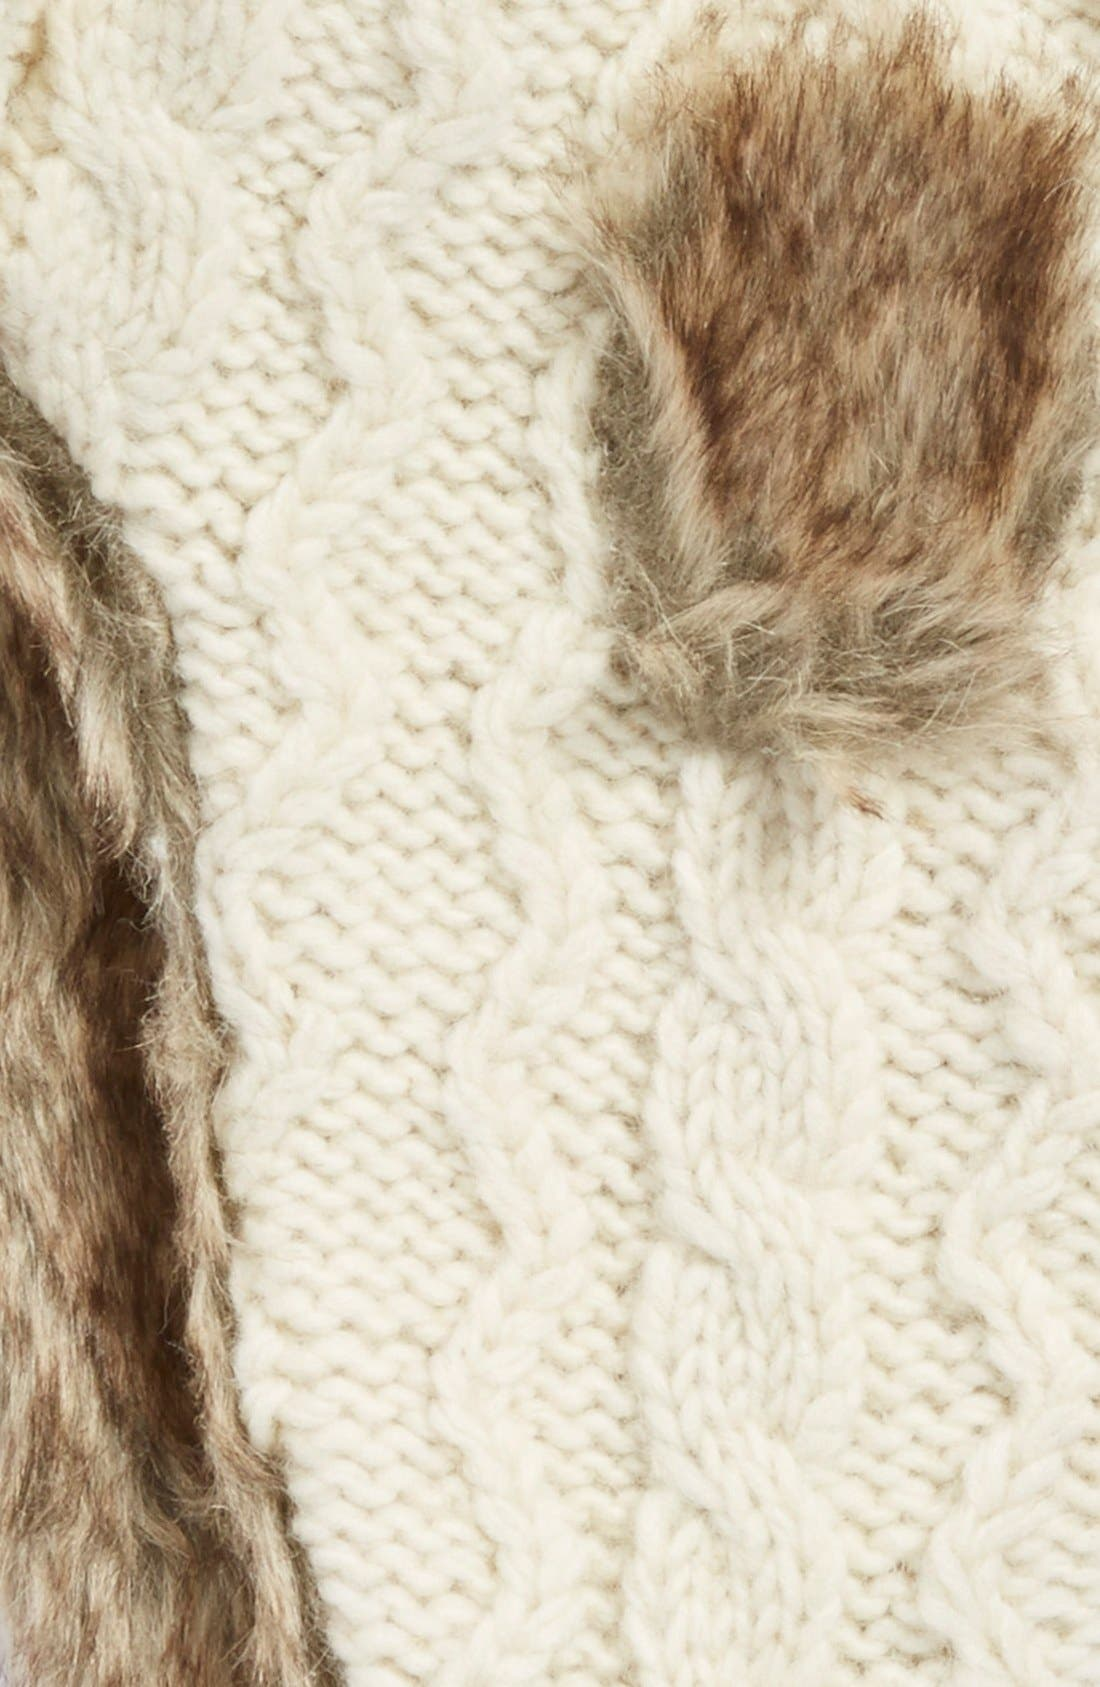 Nirvanna Designs Cable Knit Ear Flap Hat with Faux Fur Trim,                             Alternate thumbnail 2, color,                             White